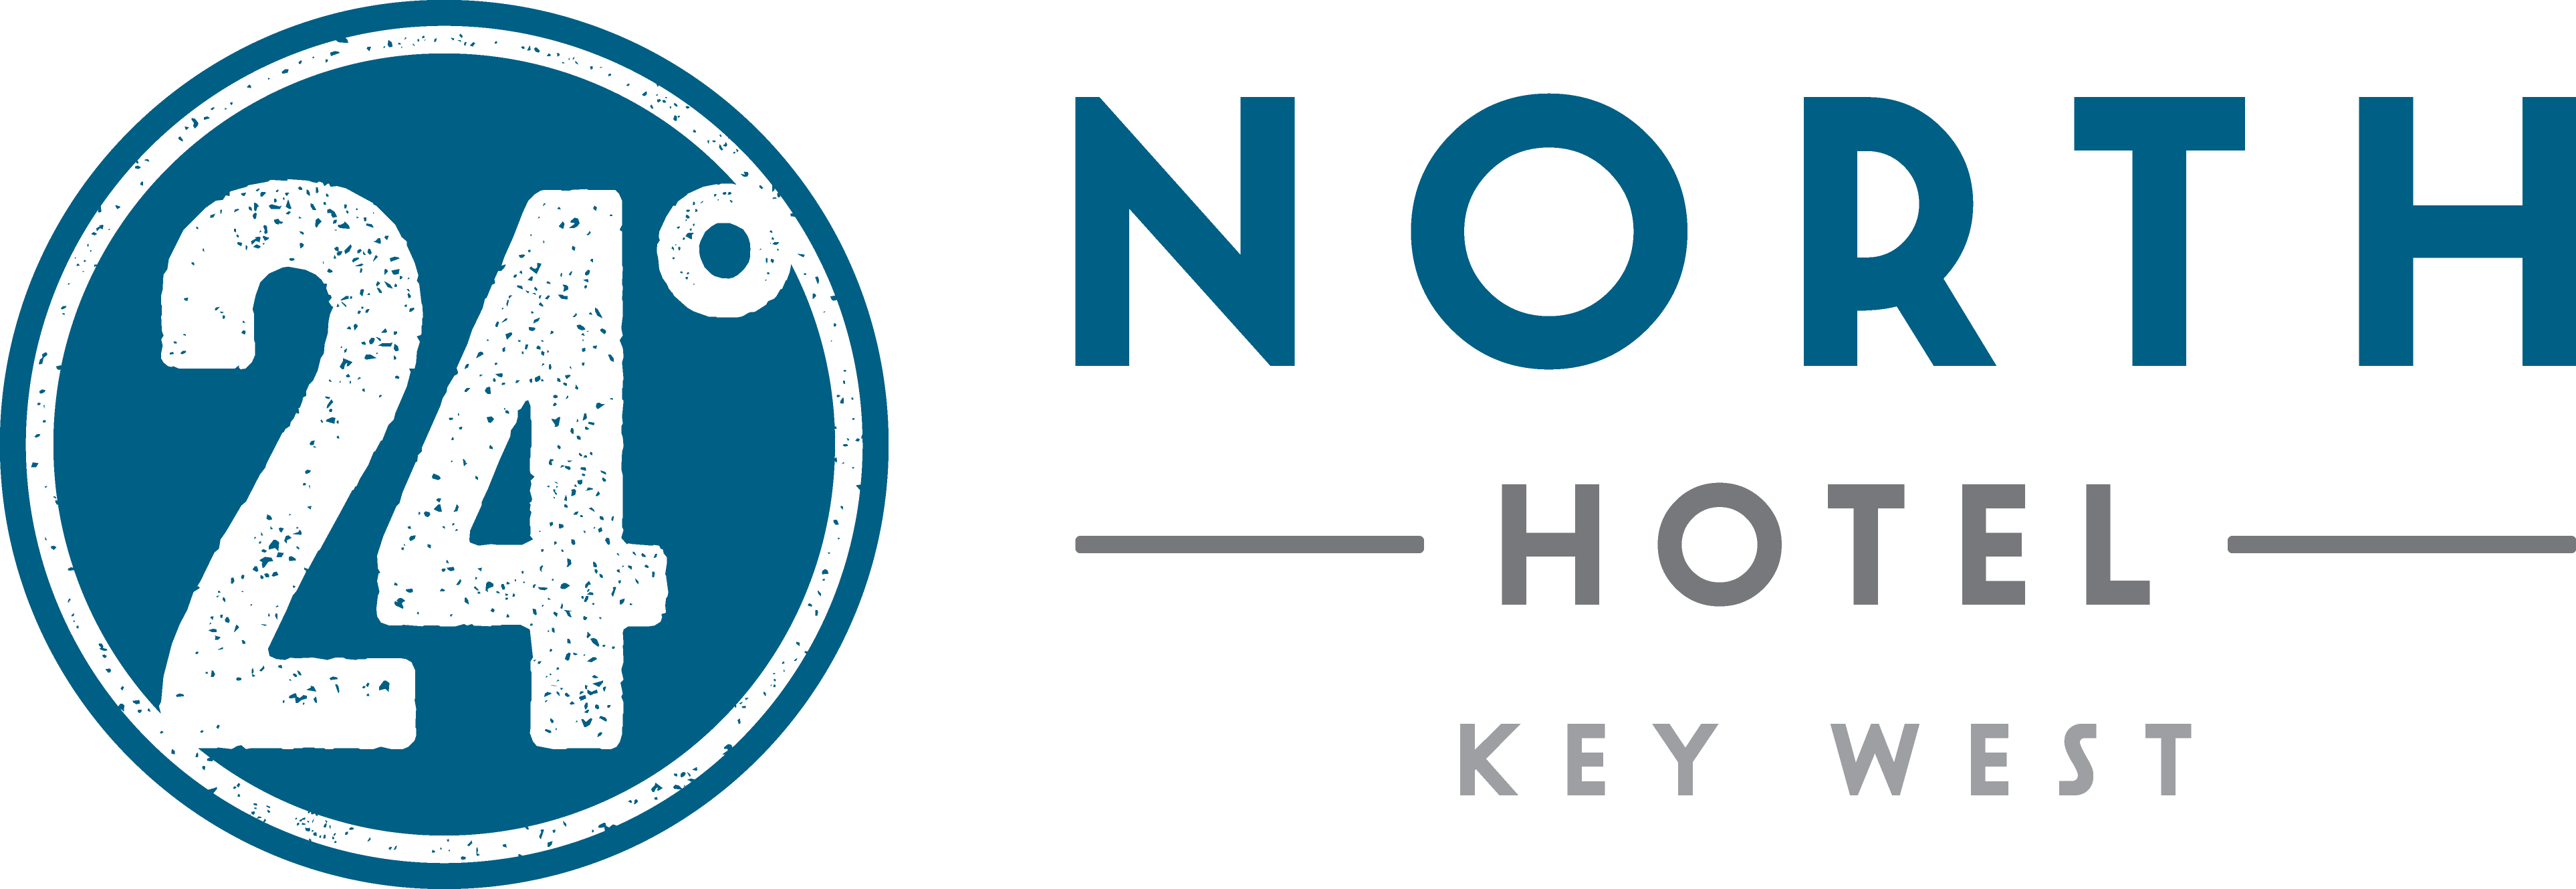 24 North Logo